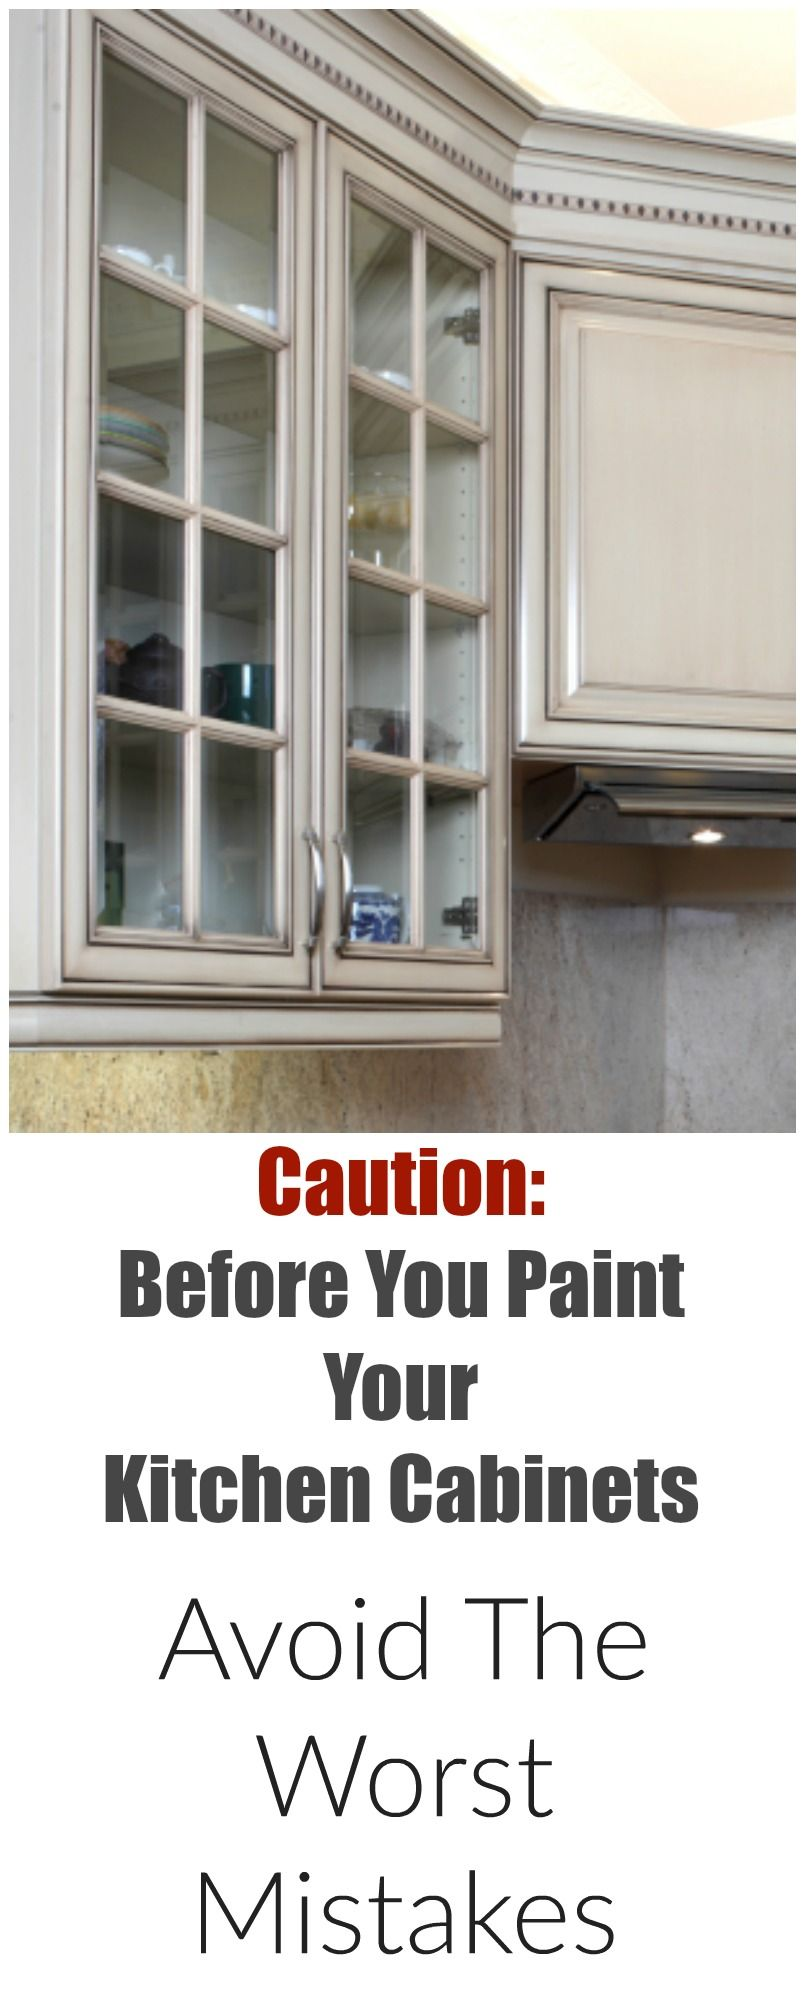 Charming Iu0027ve Had A Few Inquiries From Followers Of My Site Asking For Tips On Painting  Kitchen Cabinets. Here Are Some Of The Things Iu0027ve Done Or Seen People Do  ...